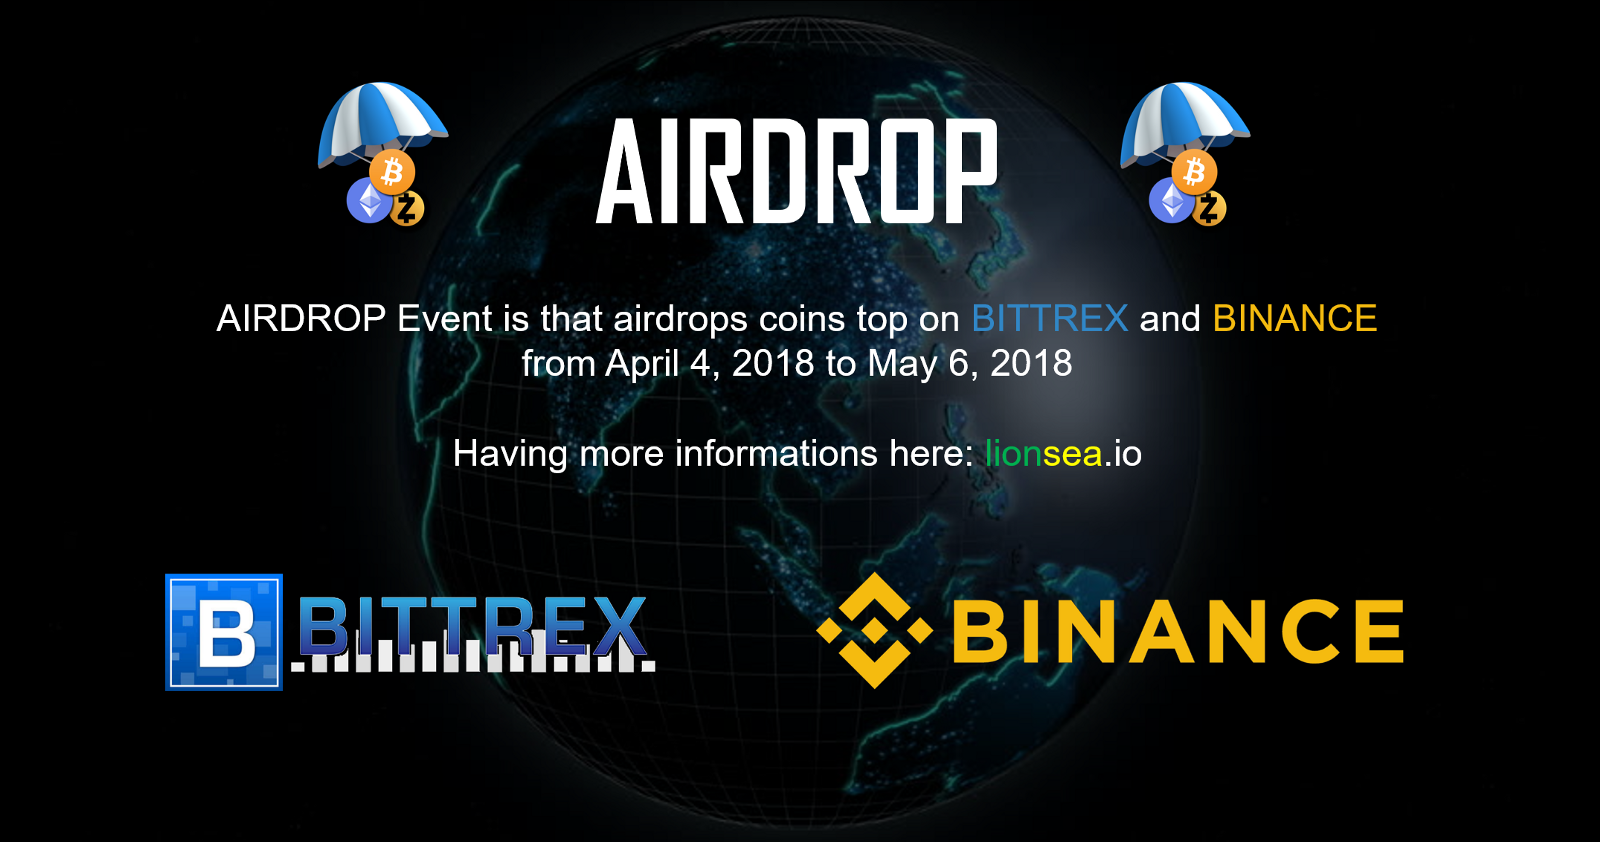 airdrop event on JumPic com